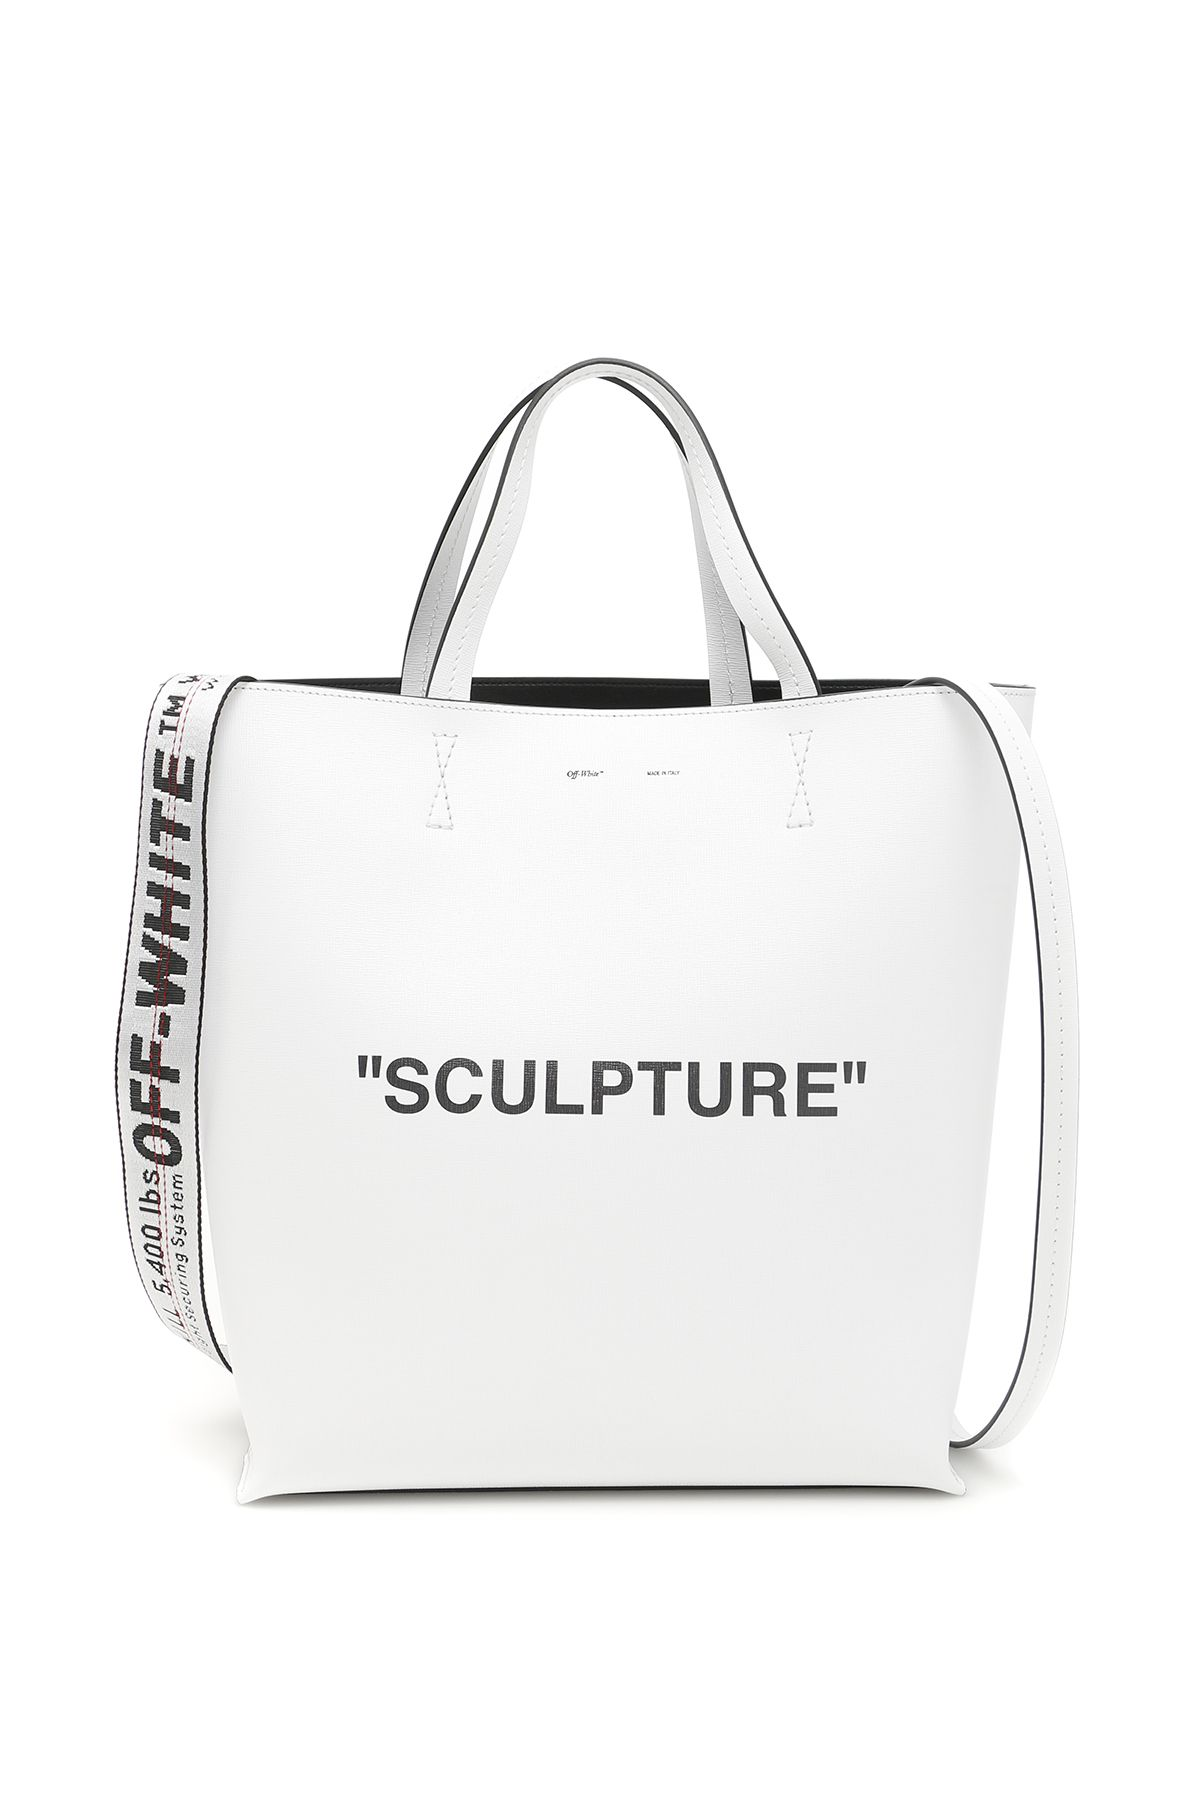 off-white bags women large sculpture tote bag